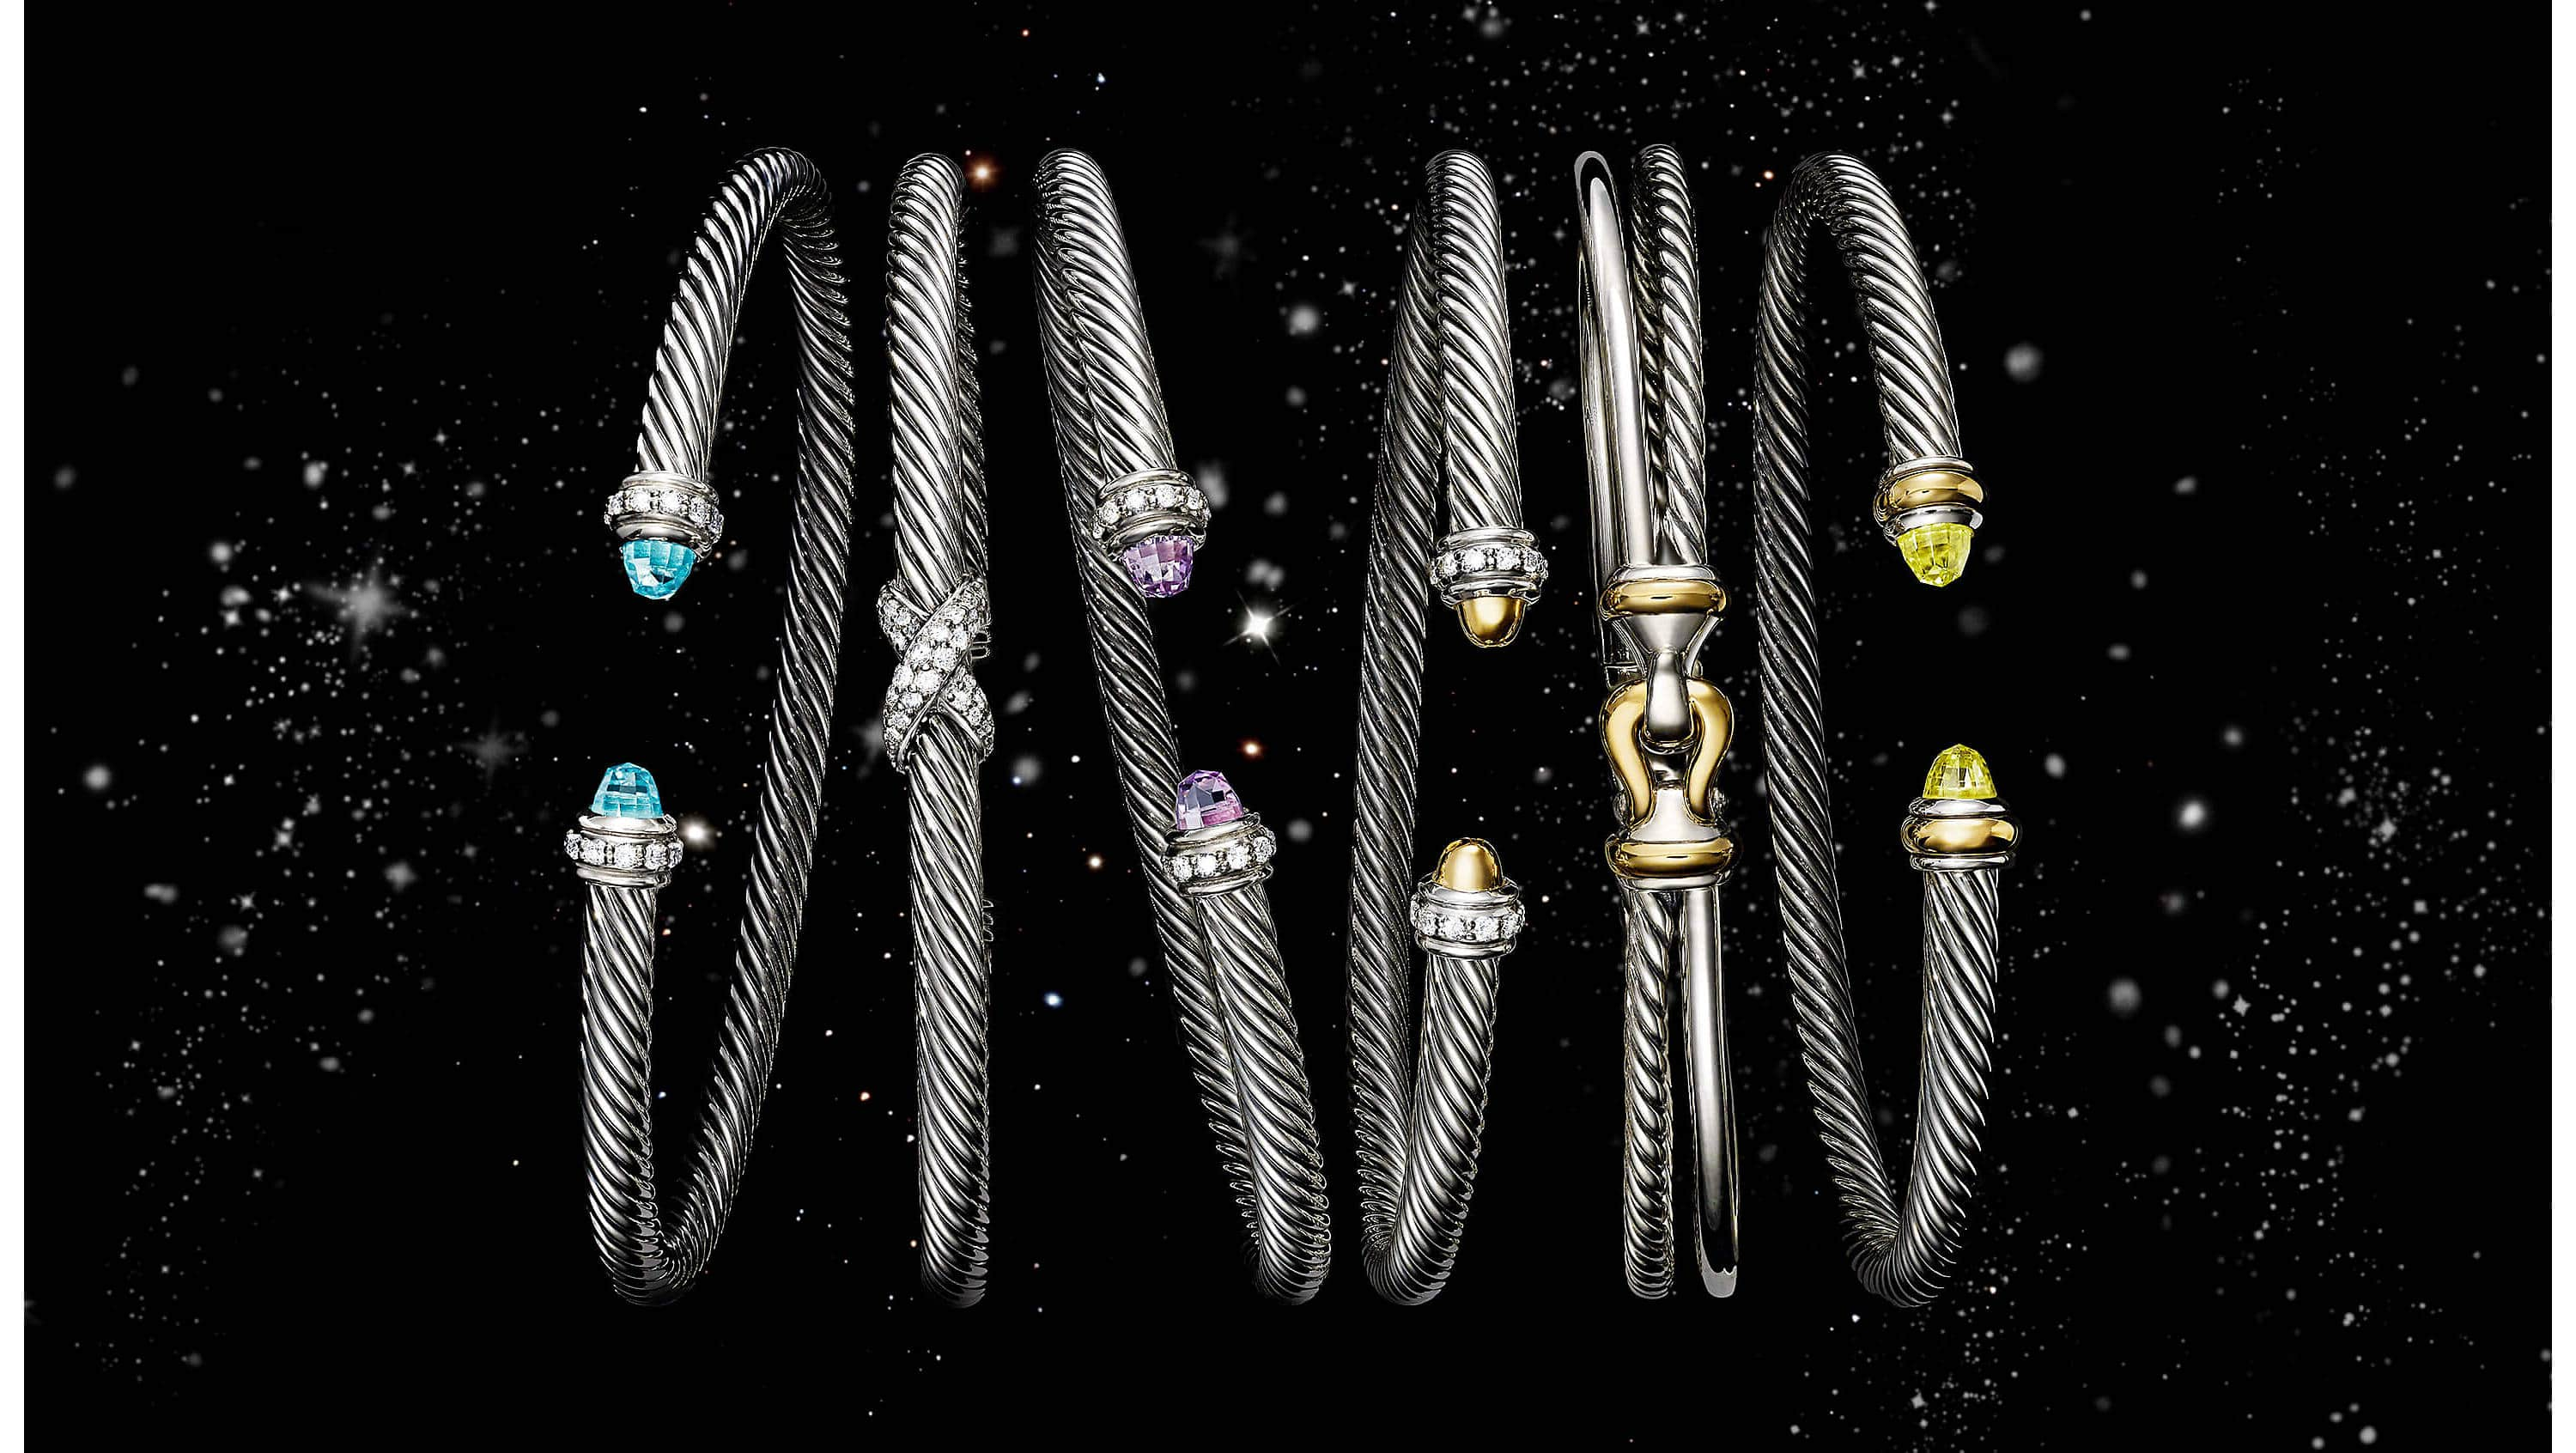 A color photo shows six David Yurman women's bracelets from the Cable, Buckle and X collections floating in a starry night sky. The jewelry is crafted from sterling silver with or without pavé diamonds, colored gemstones and 18K yellow gold accents.